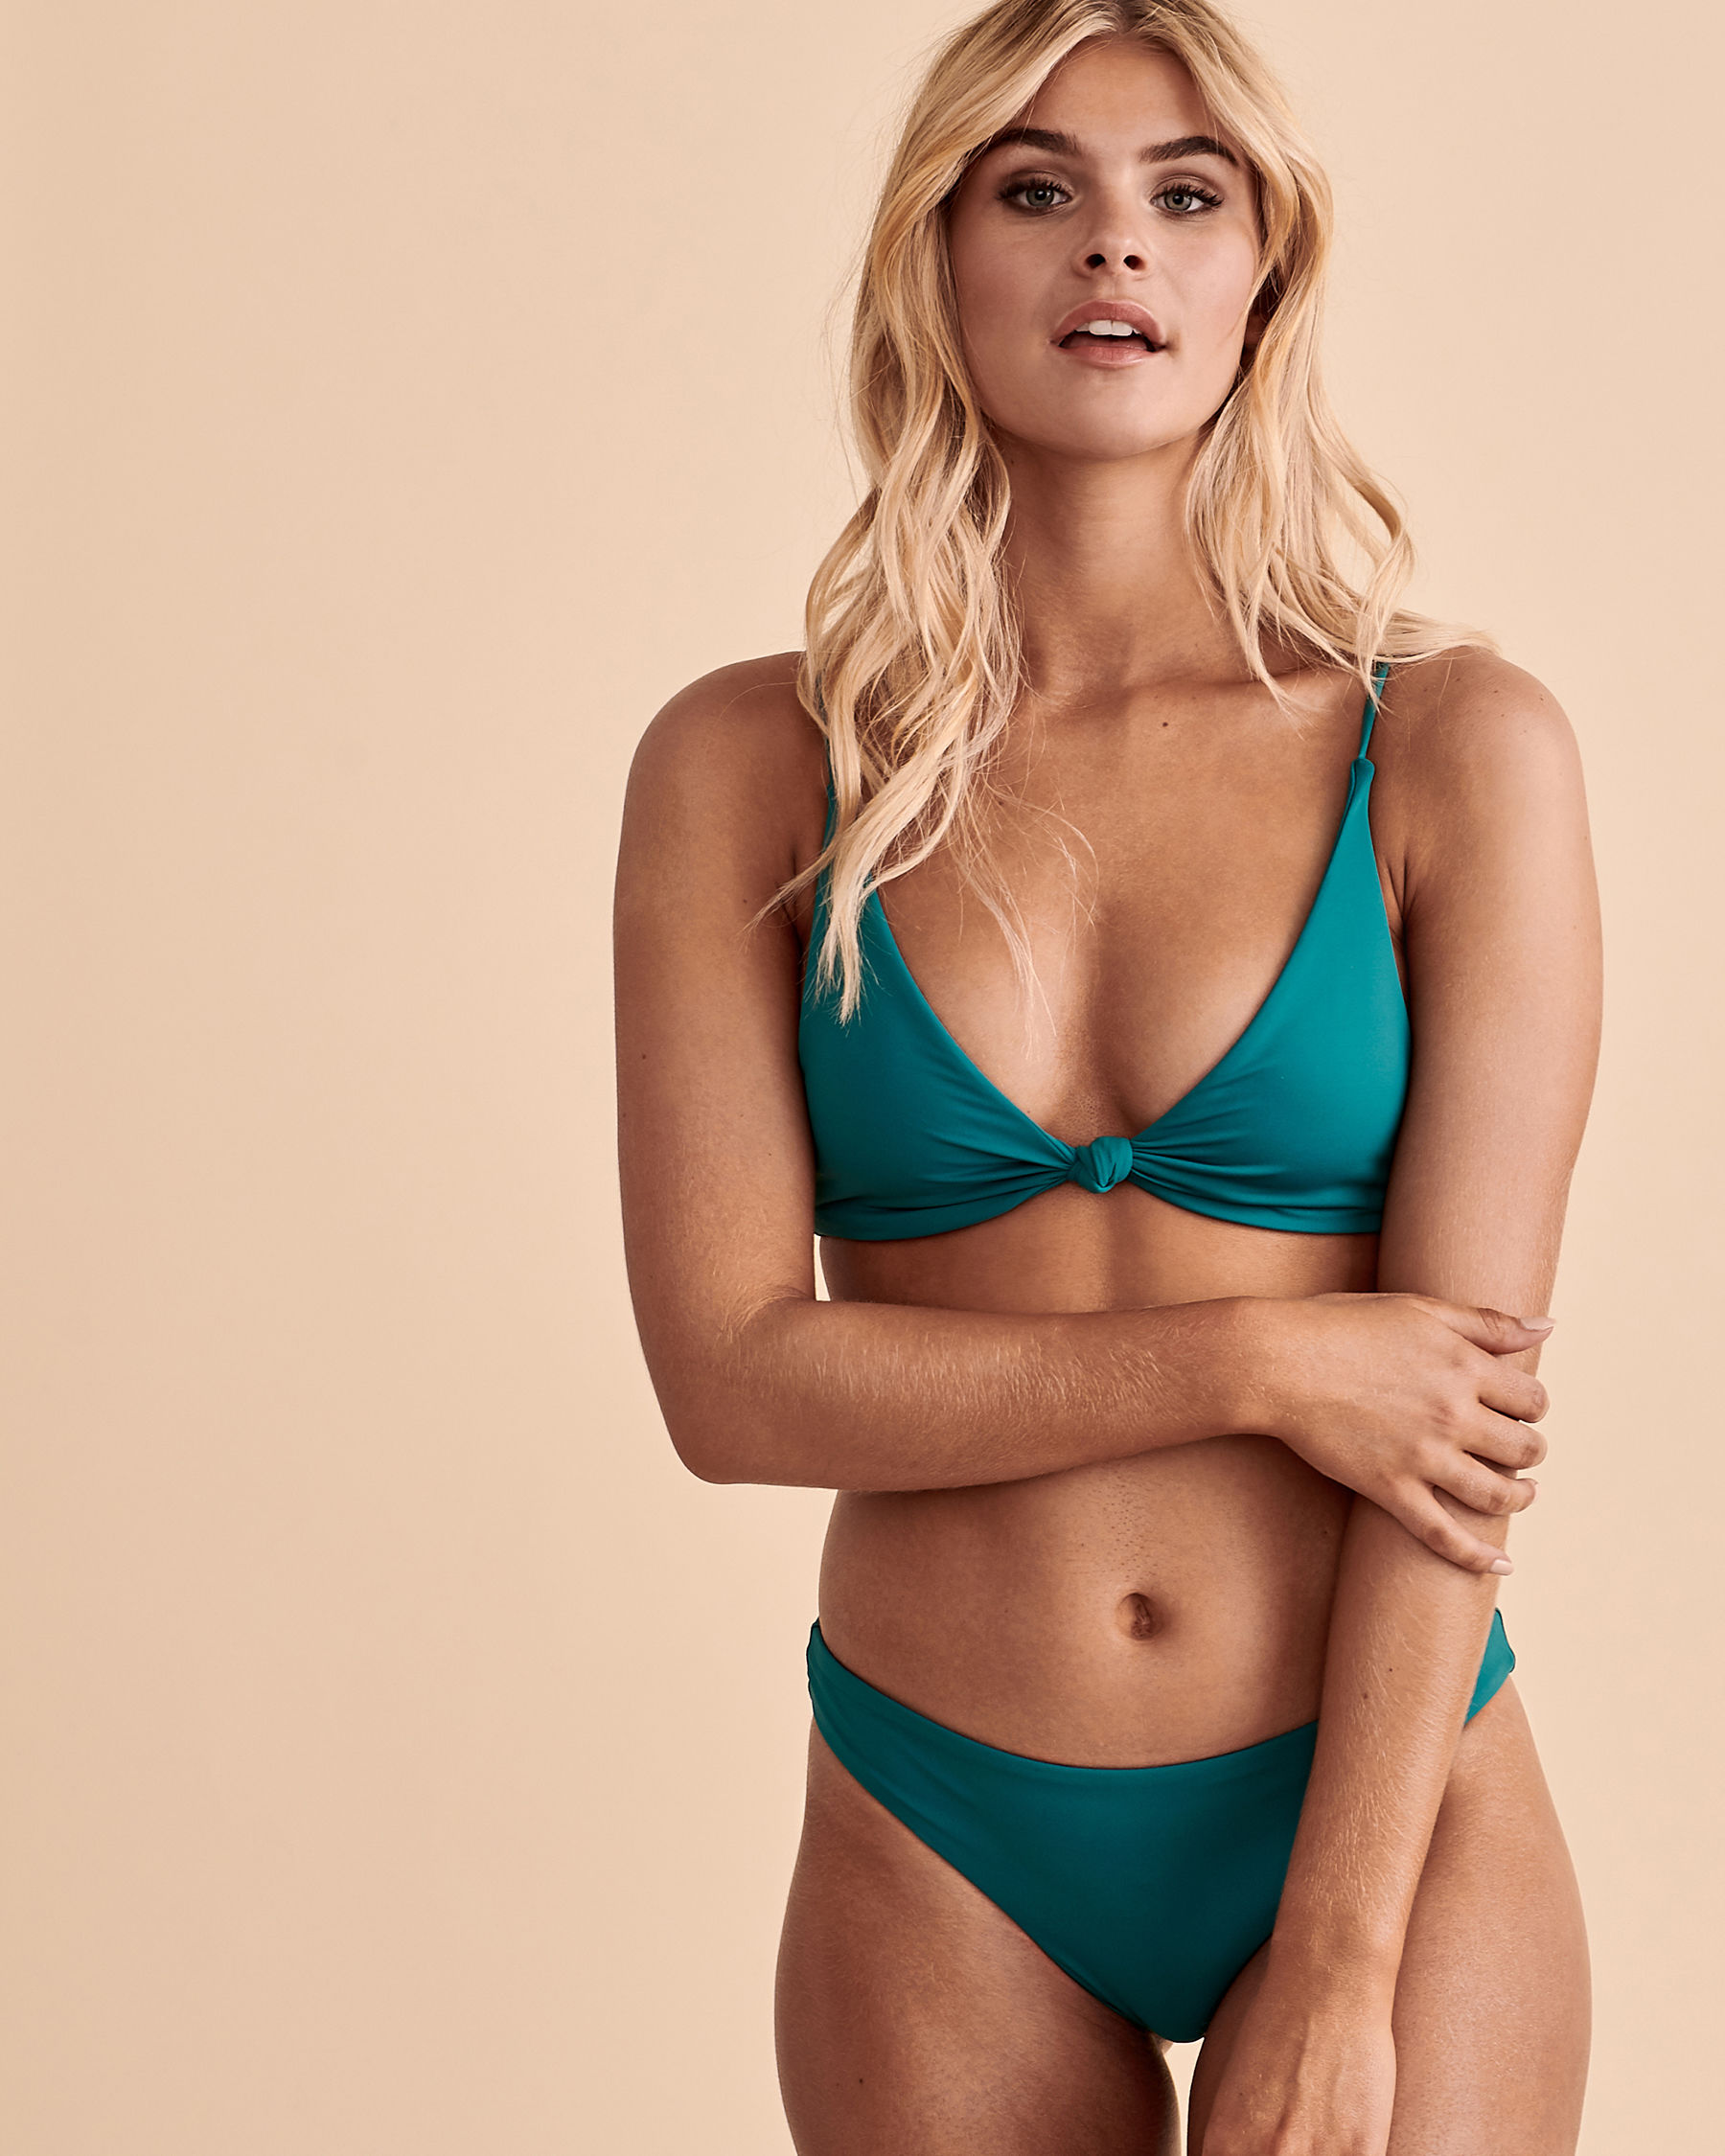 O'NEILL SALTWATER Knotted Triangle Bikini Top Green SP0474003 - View1